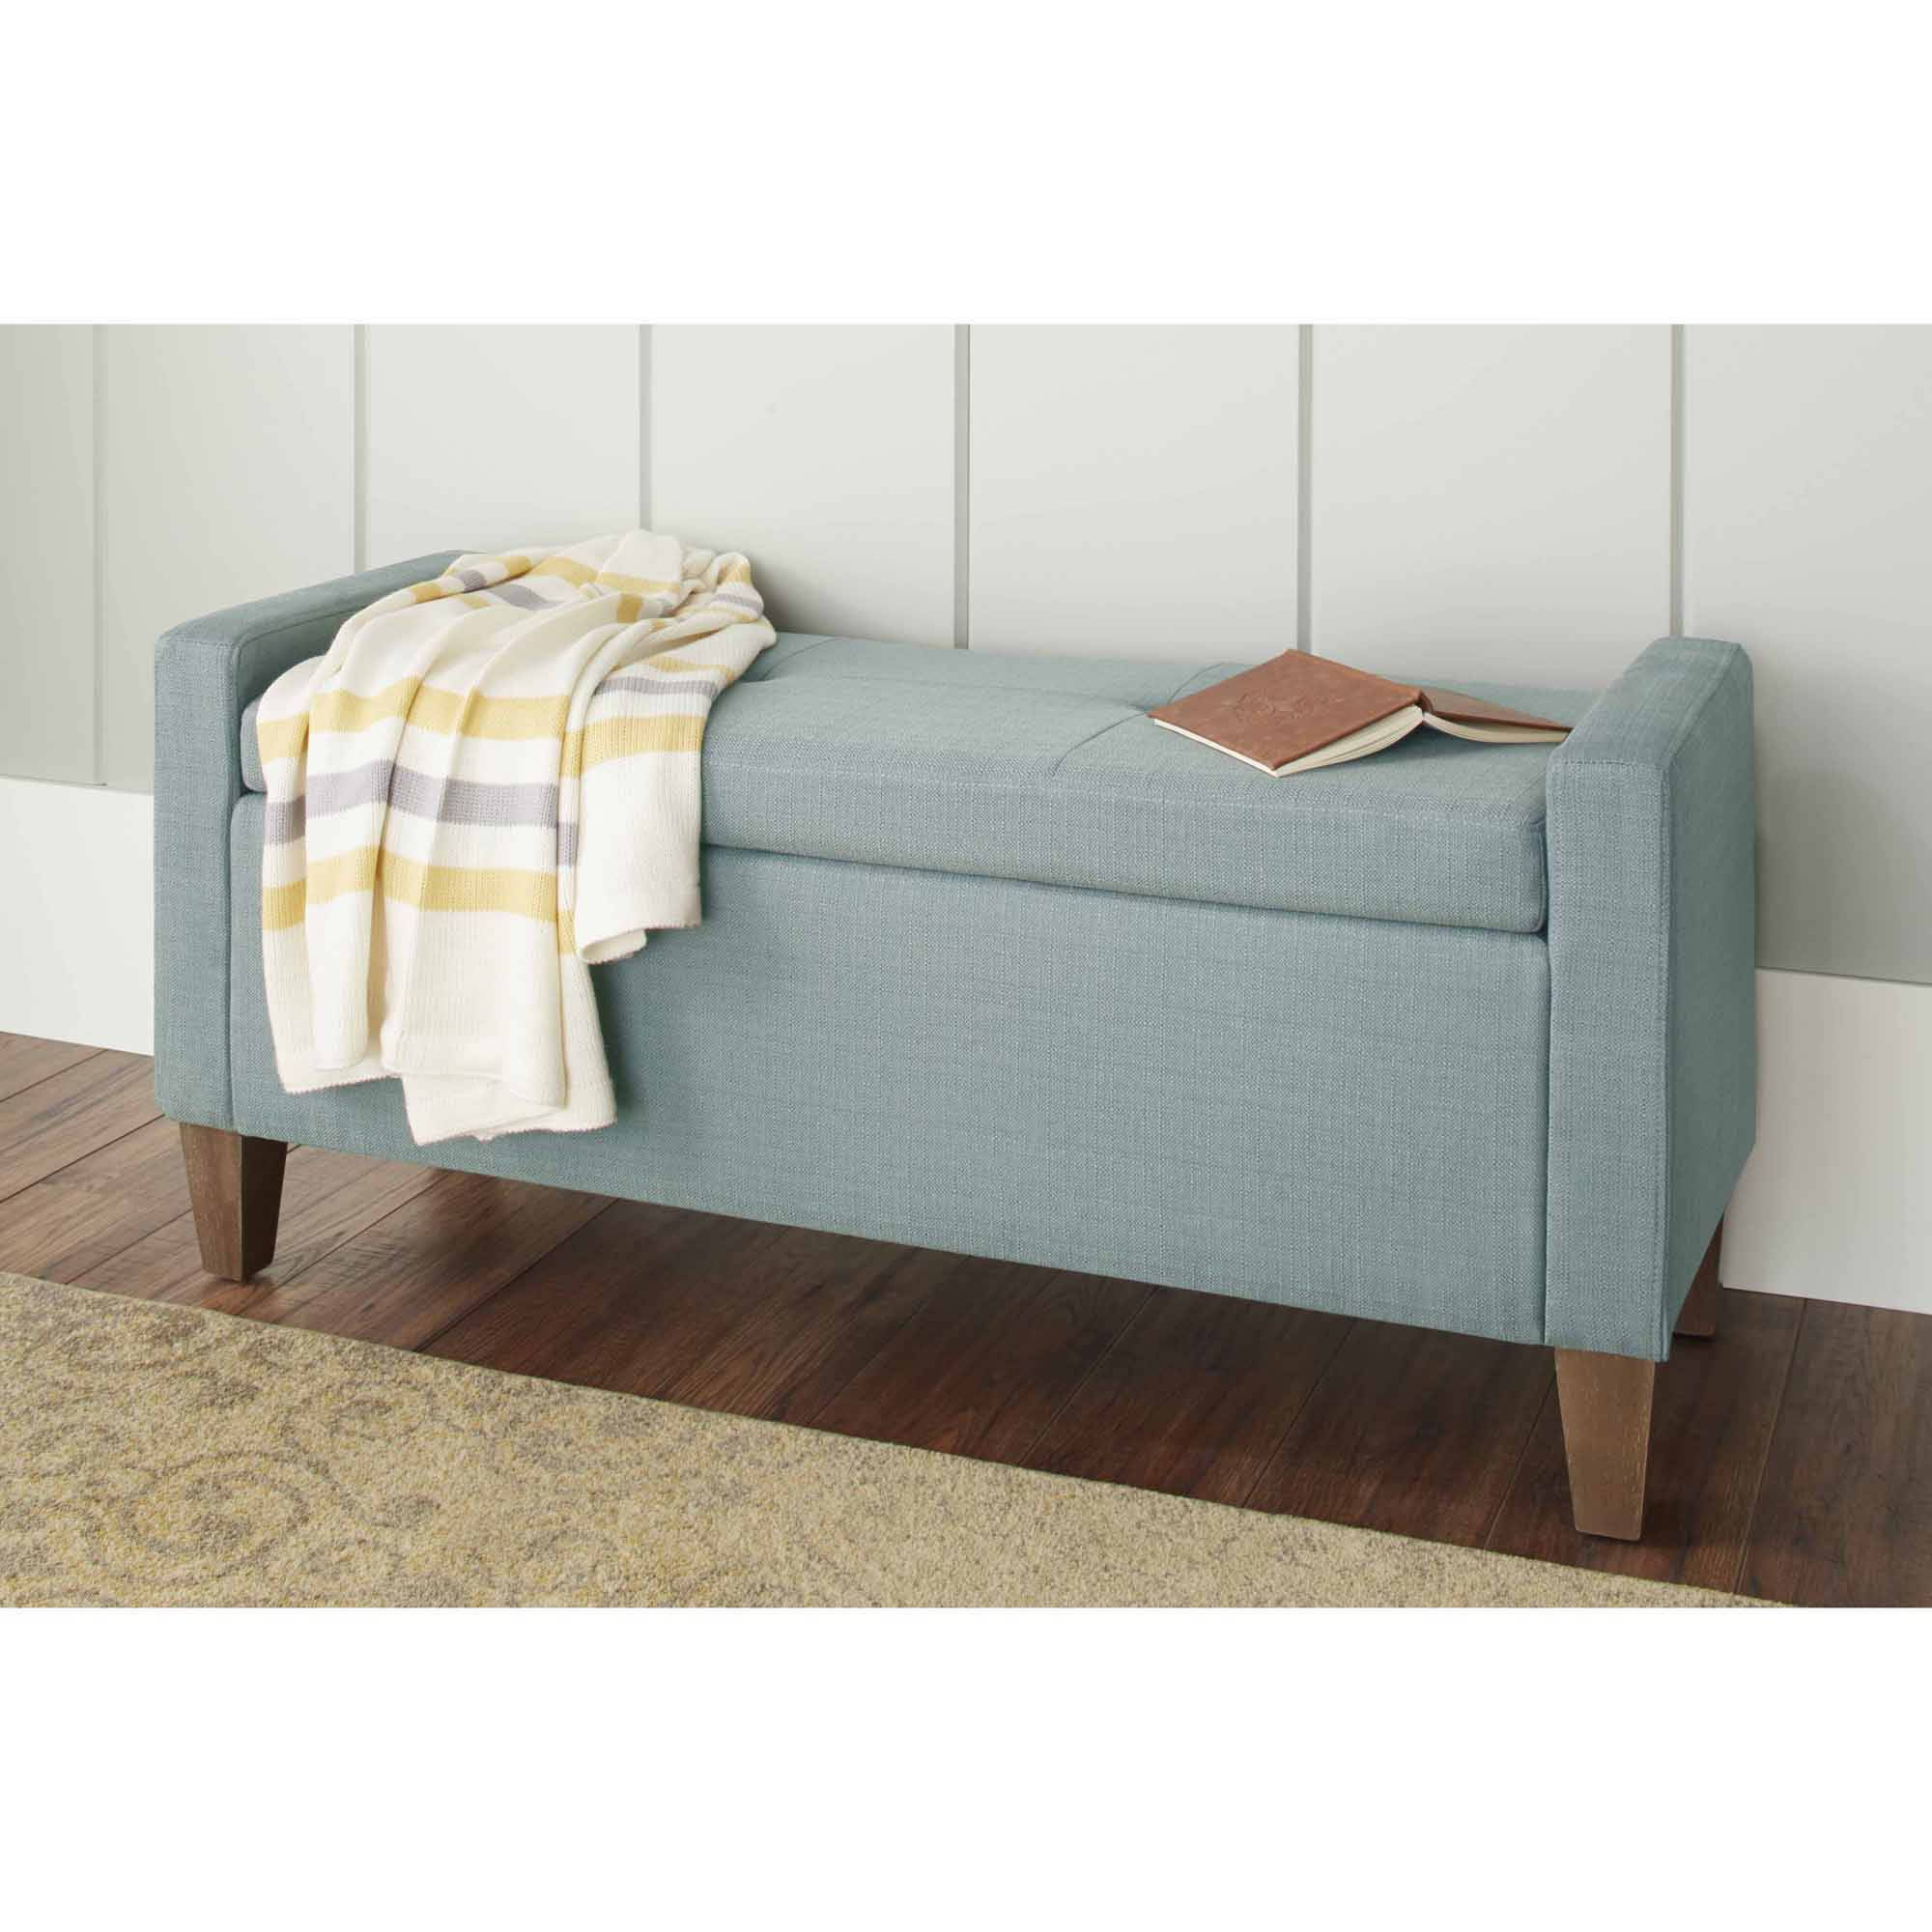 Beautiful 10 Spring Street Streeter Storage Bench, Multiple Colors